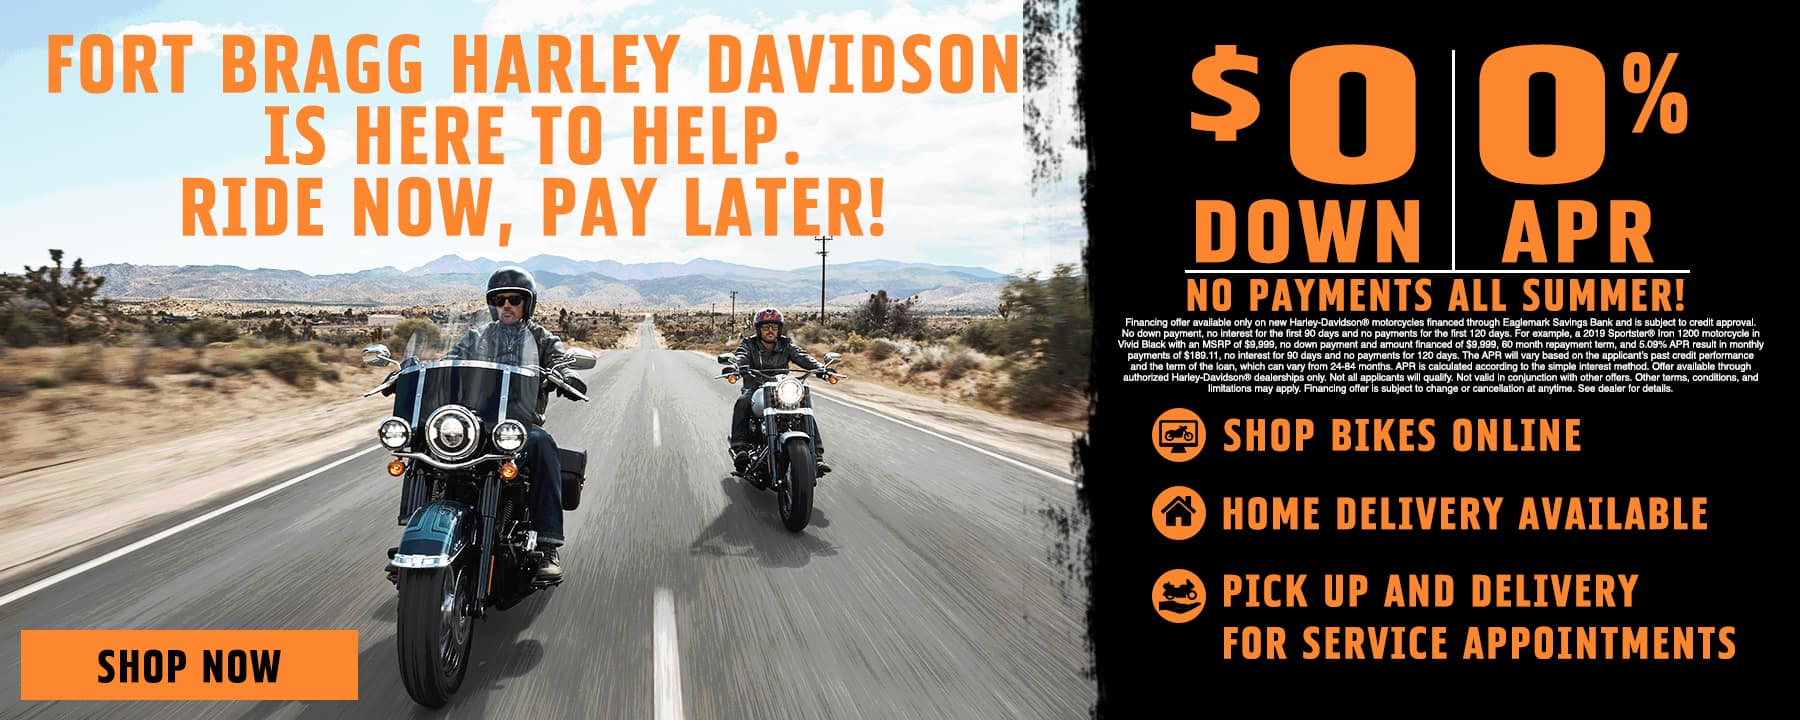 Fort Bragg Harley-Davidson is Here To Help! Ride Now, Pay Later!